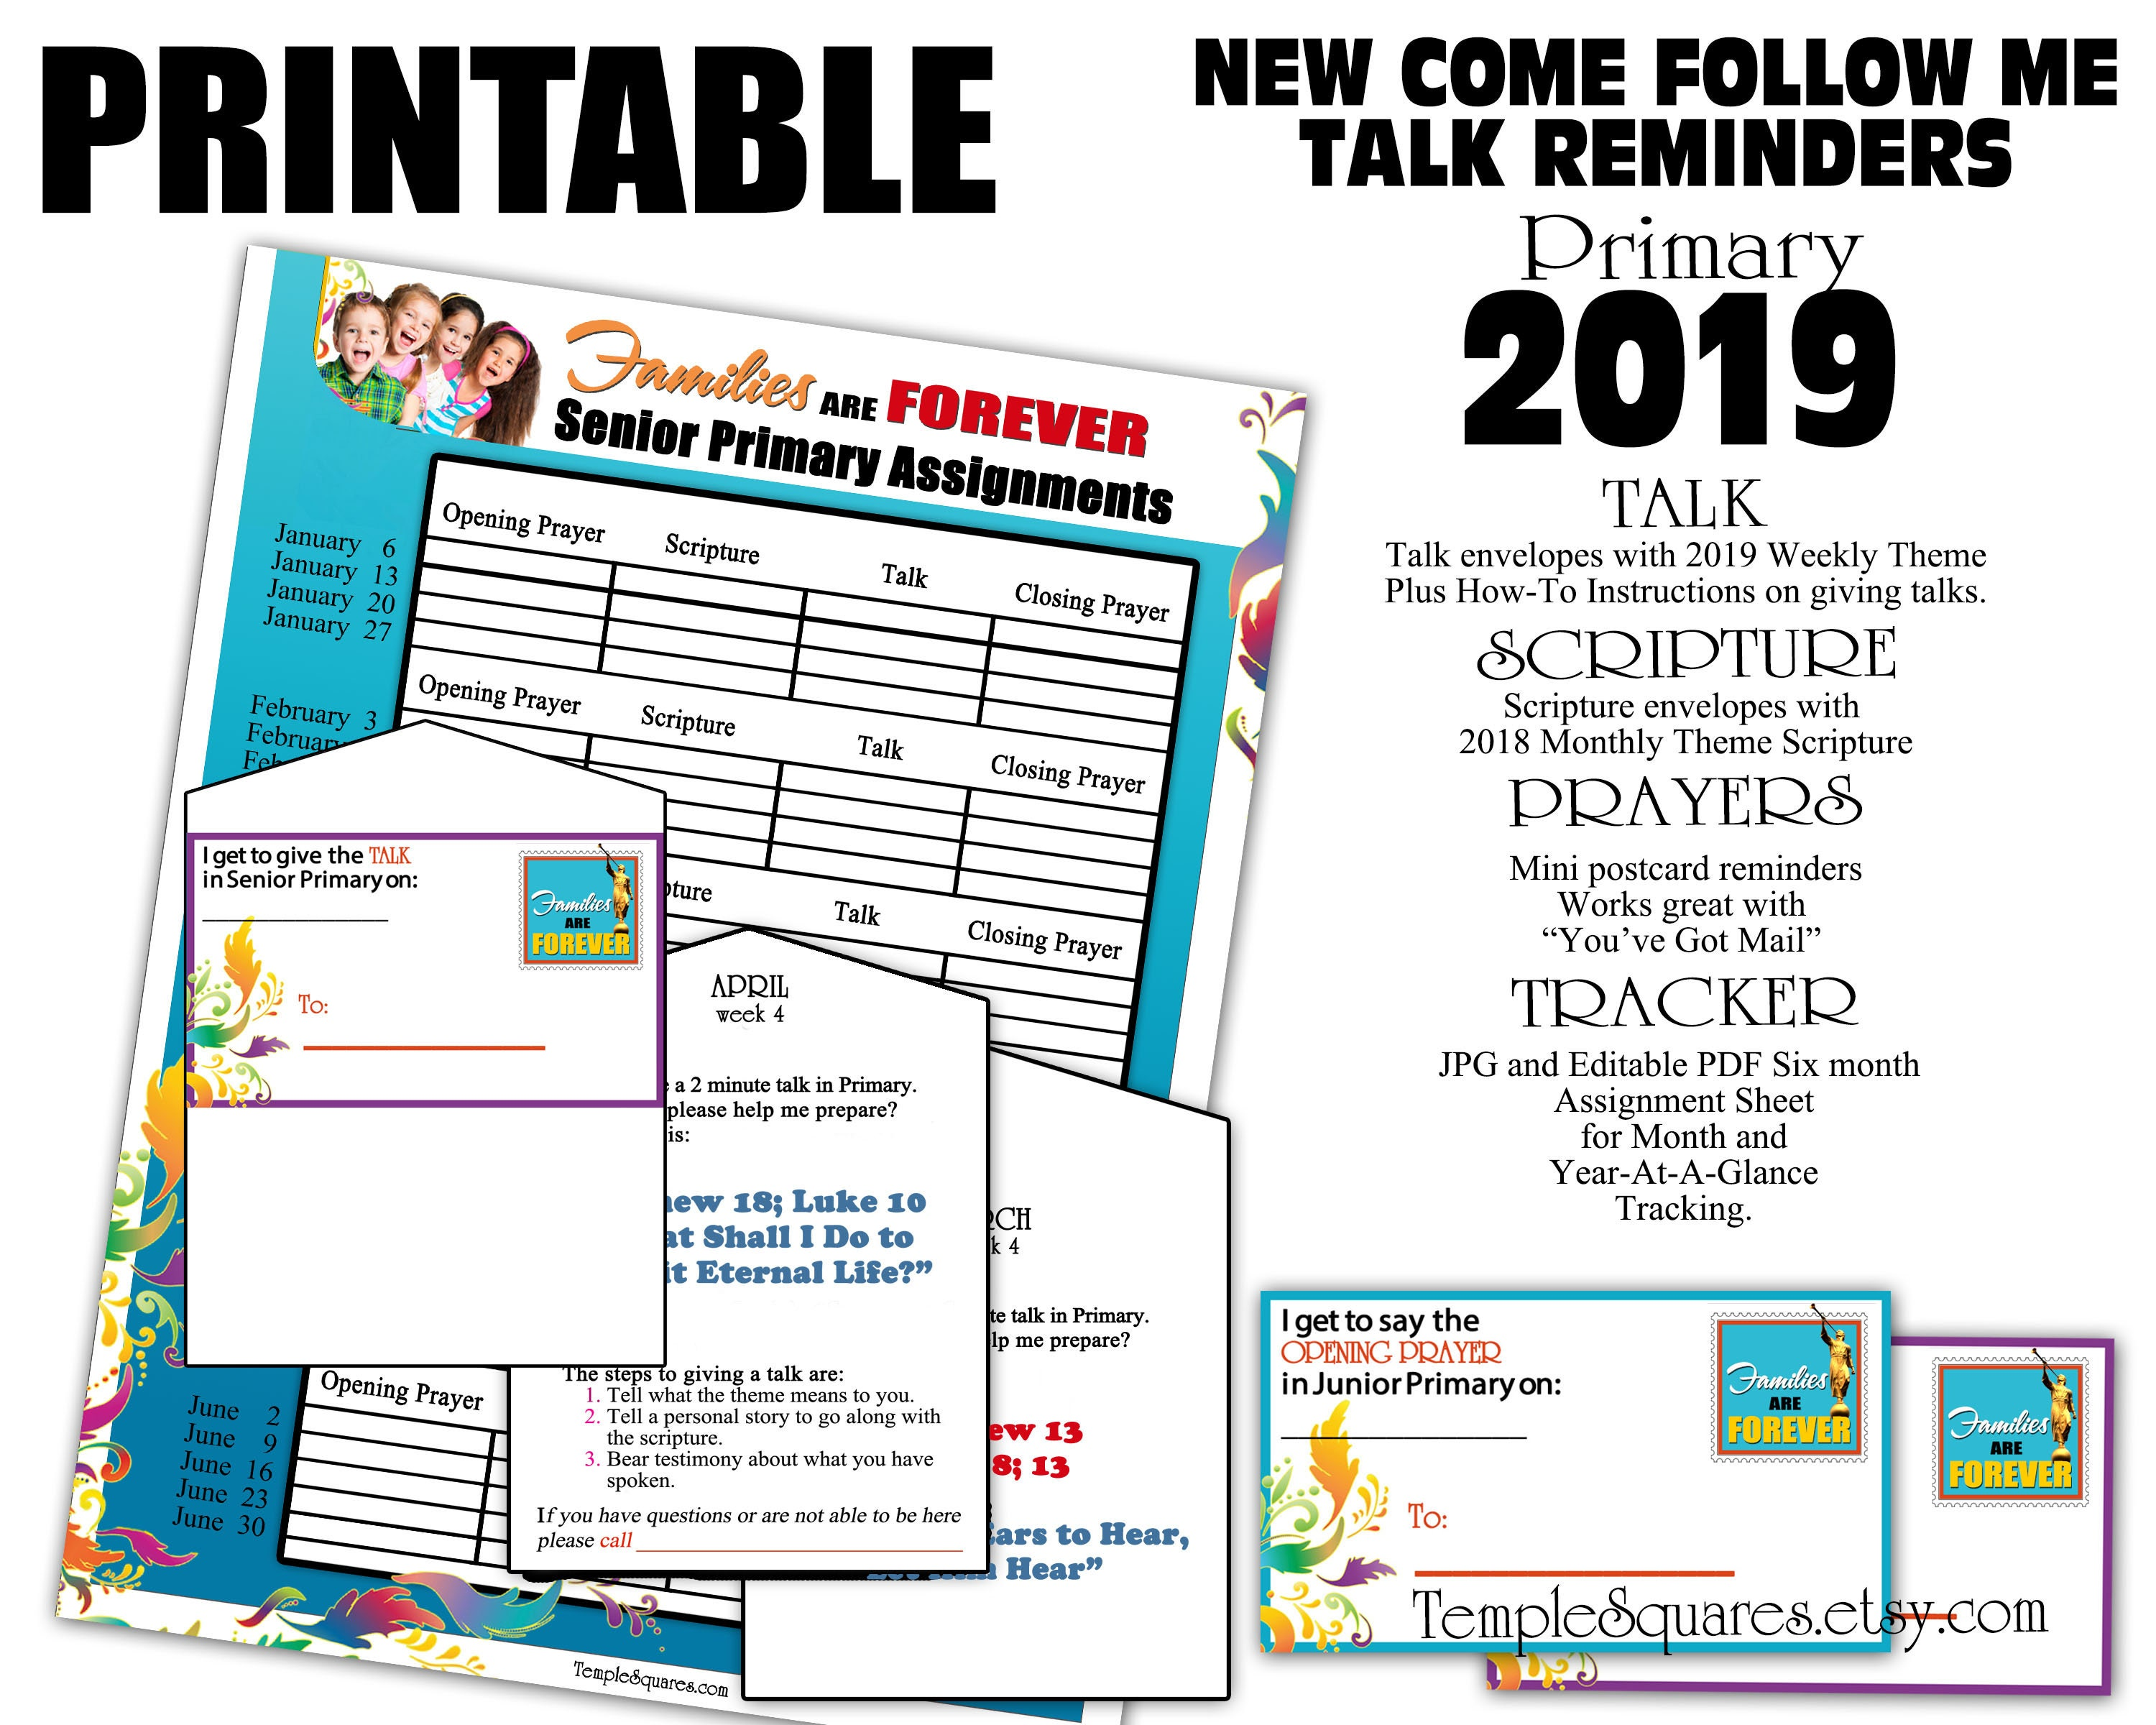 Editable Printable Primary 2019 Talk Reminders, Scriptures